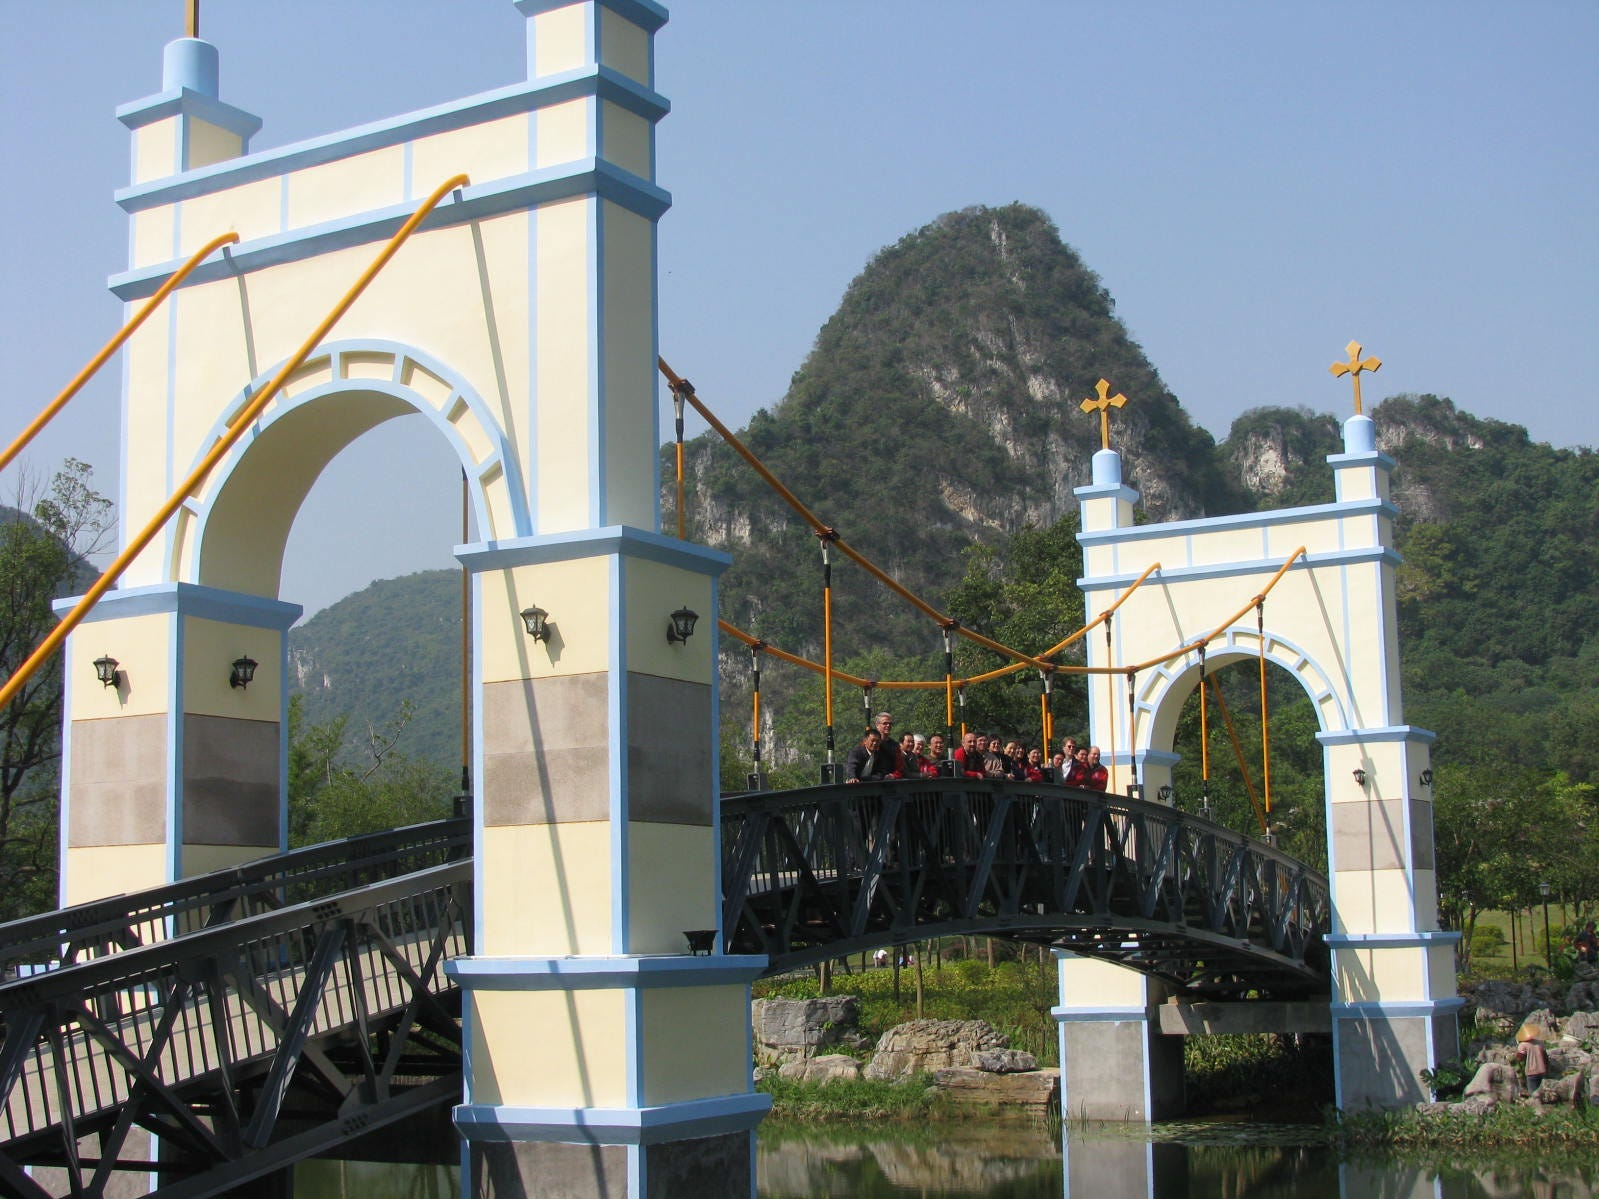 A delegation of visitors from Cincinnati stands on a replica of the Roebling Suspension Bridge in Liuzhou, China, during a visit to Cincinnati's sister city in autumn 2008.